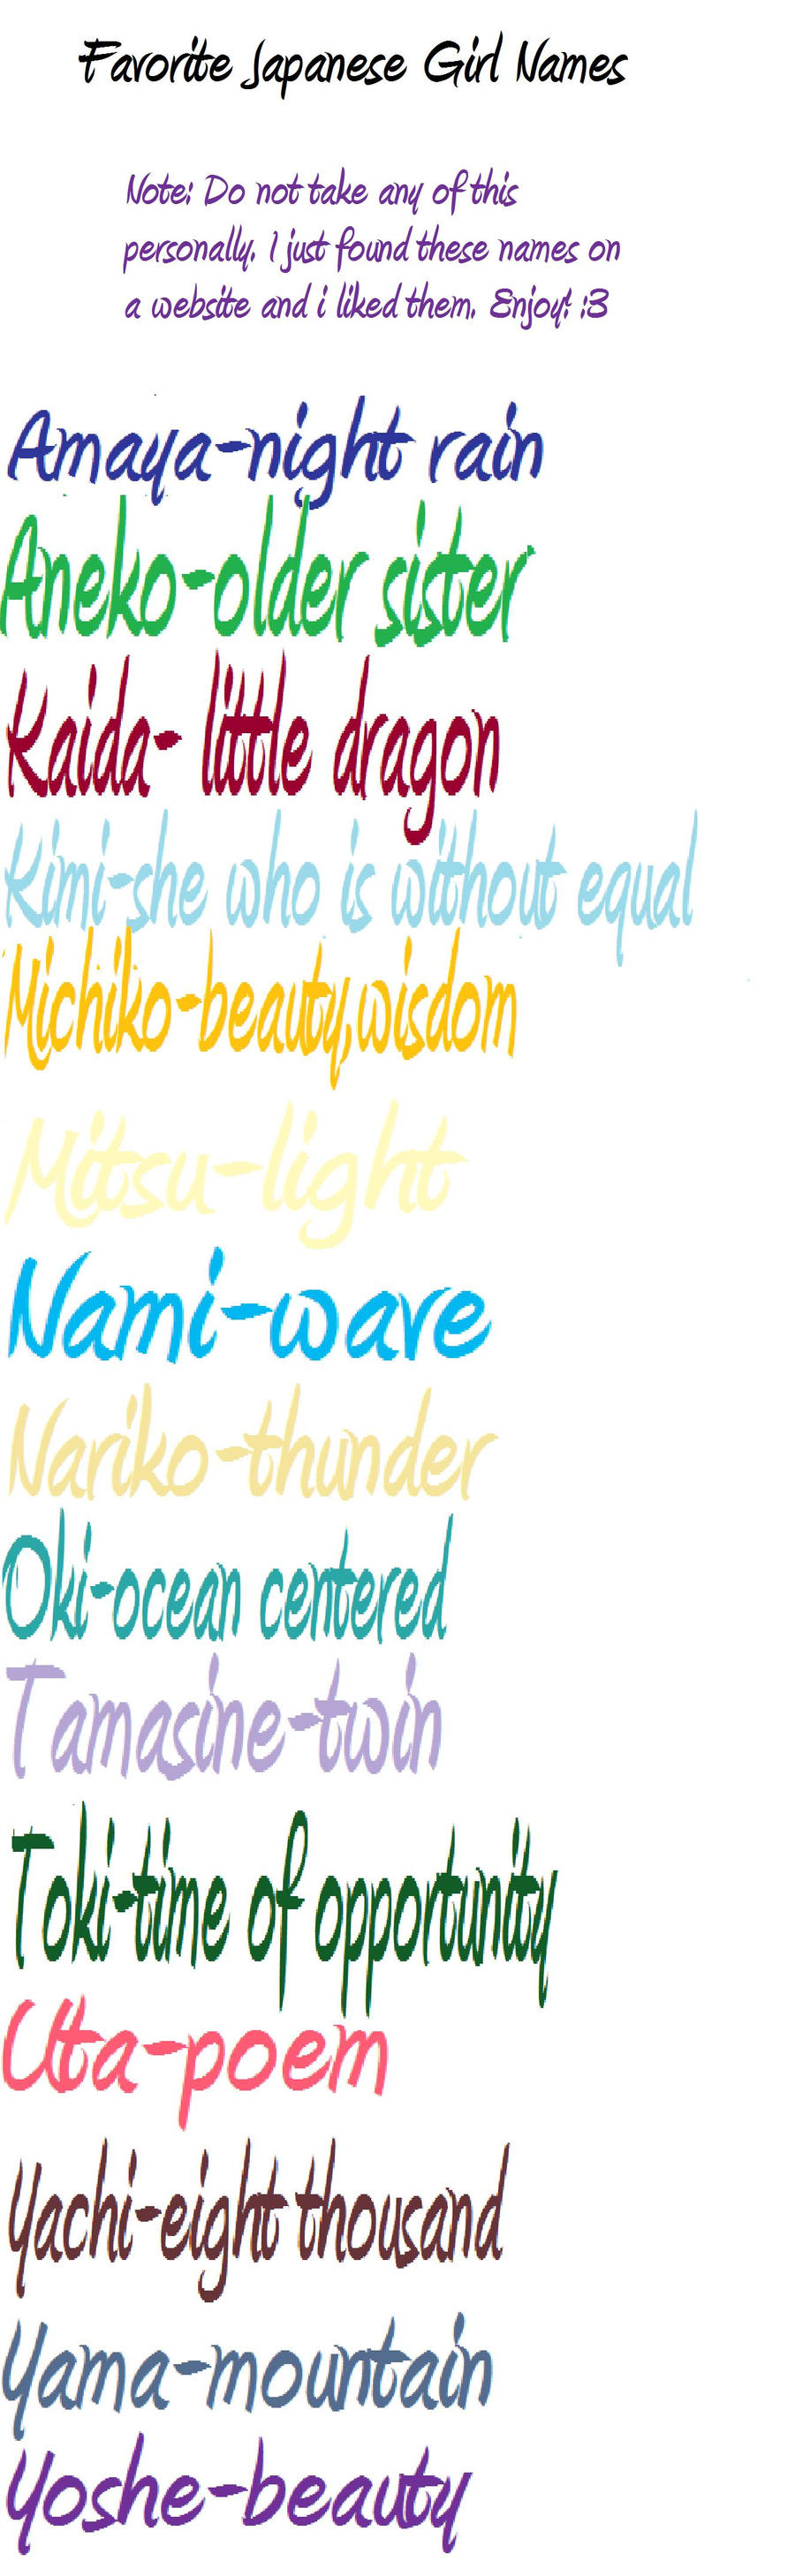 fav japanese girl names by randomizer7 on deviantart